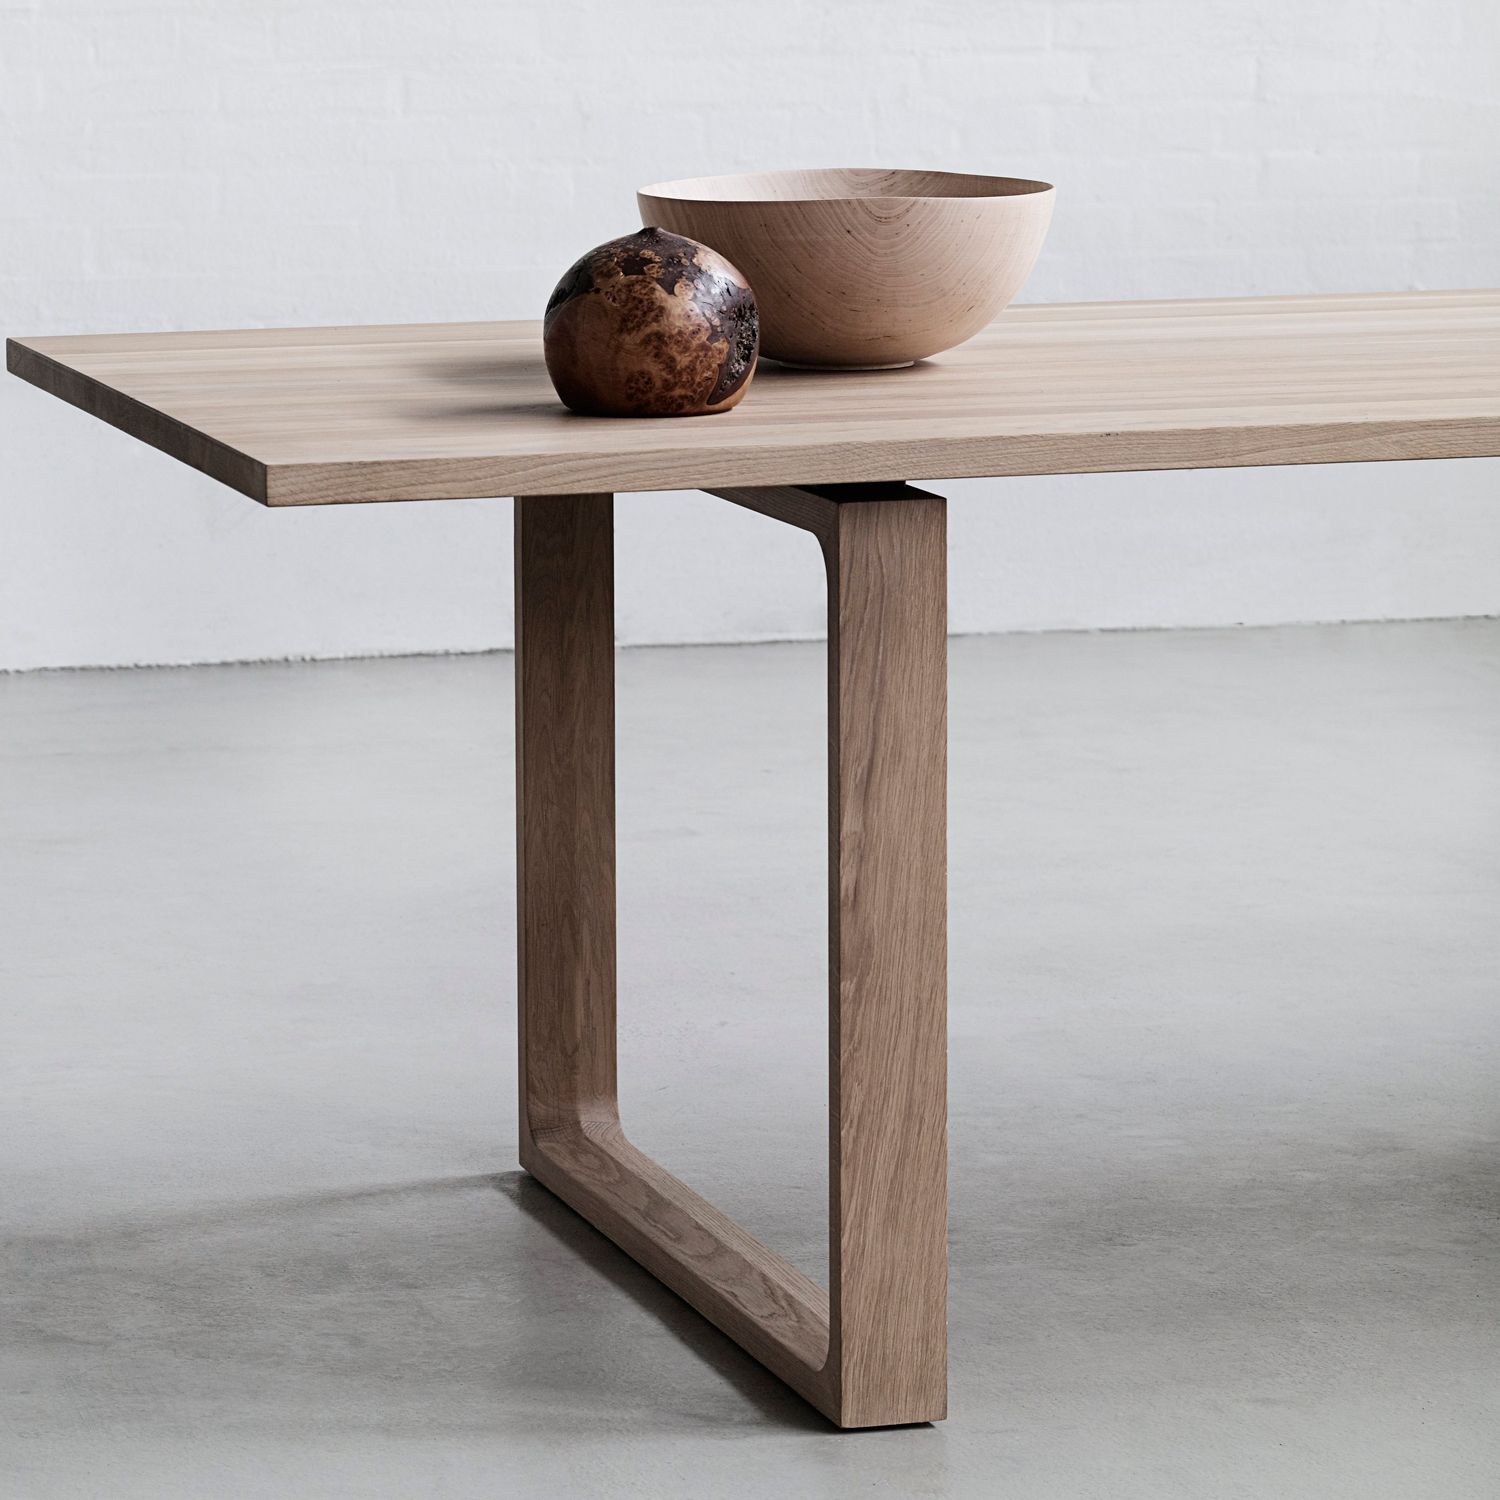 fritz hansen essay dining table in oak by cecilie manz essay dining table by cecilie manz effortlessly pairs natural solid wood simple modernist form to create this communal and contemporary design